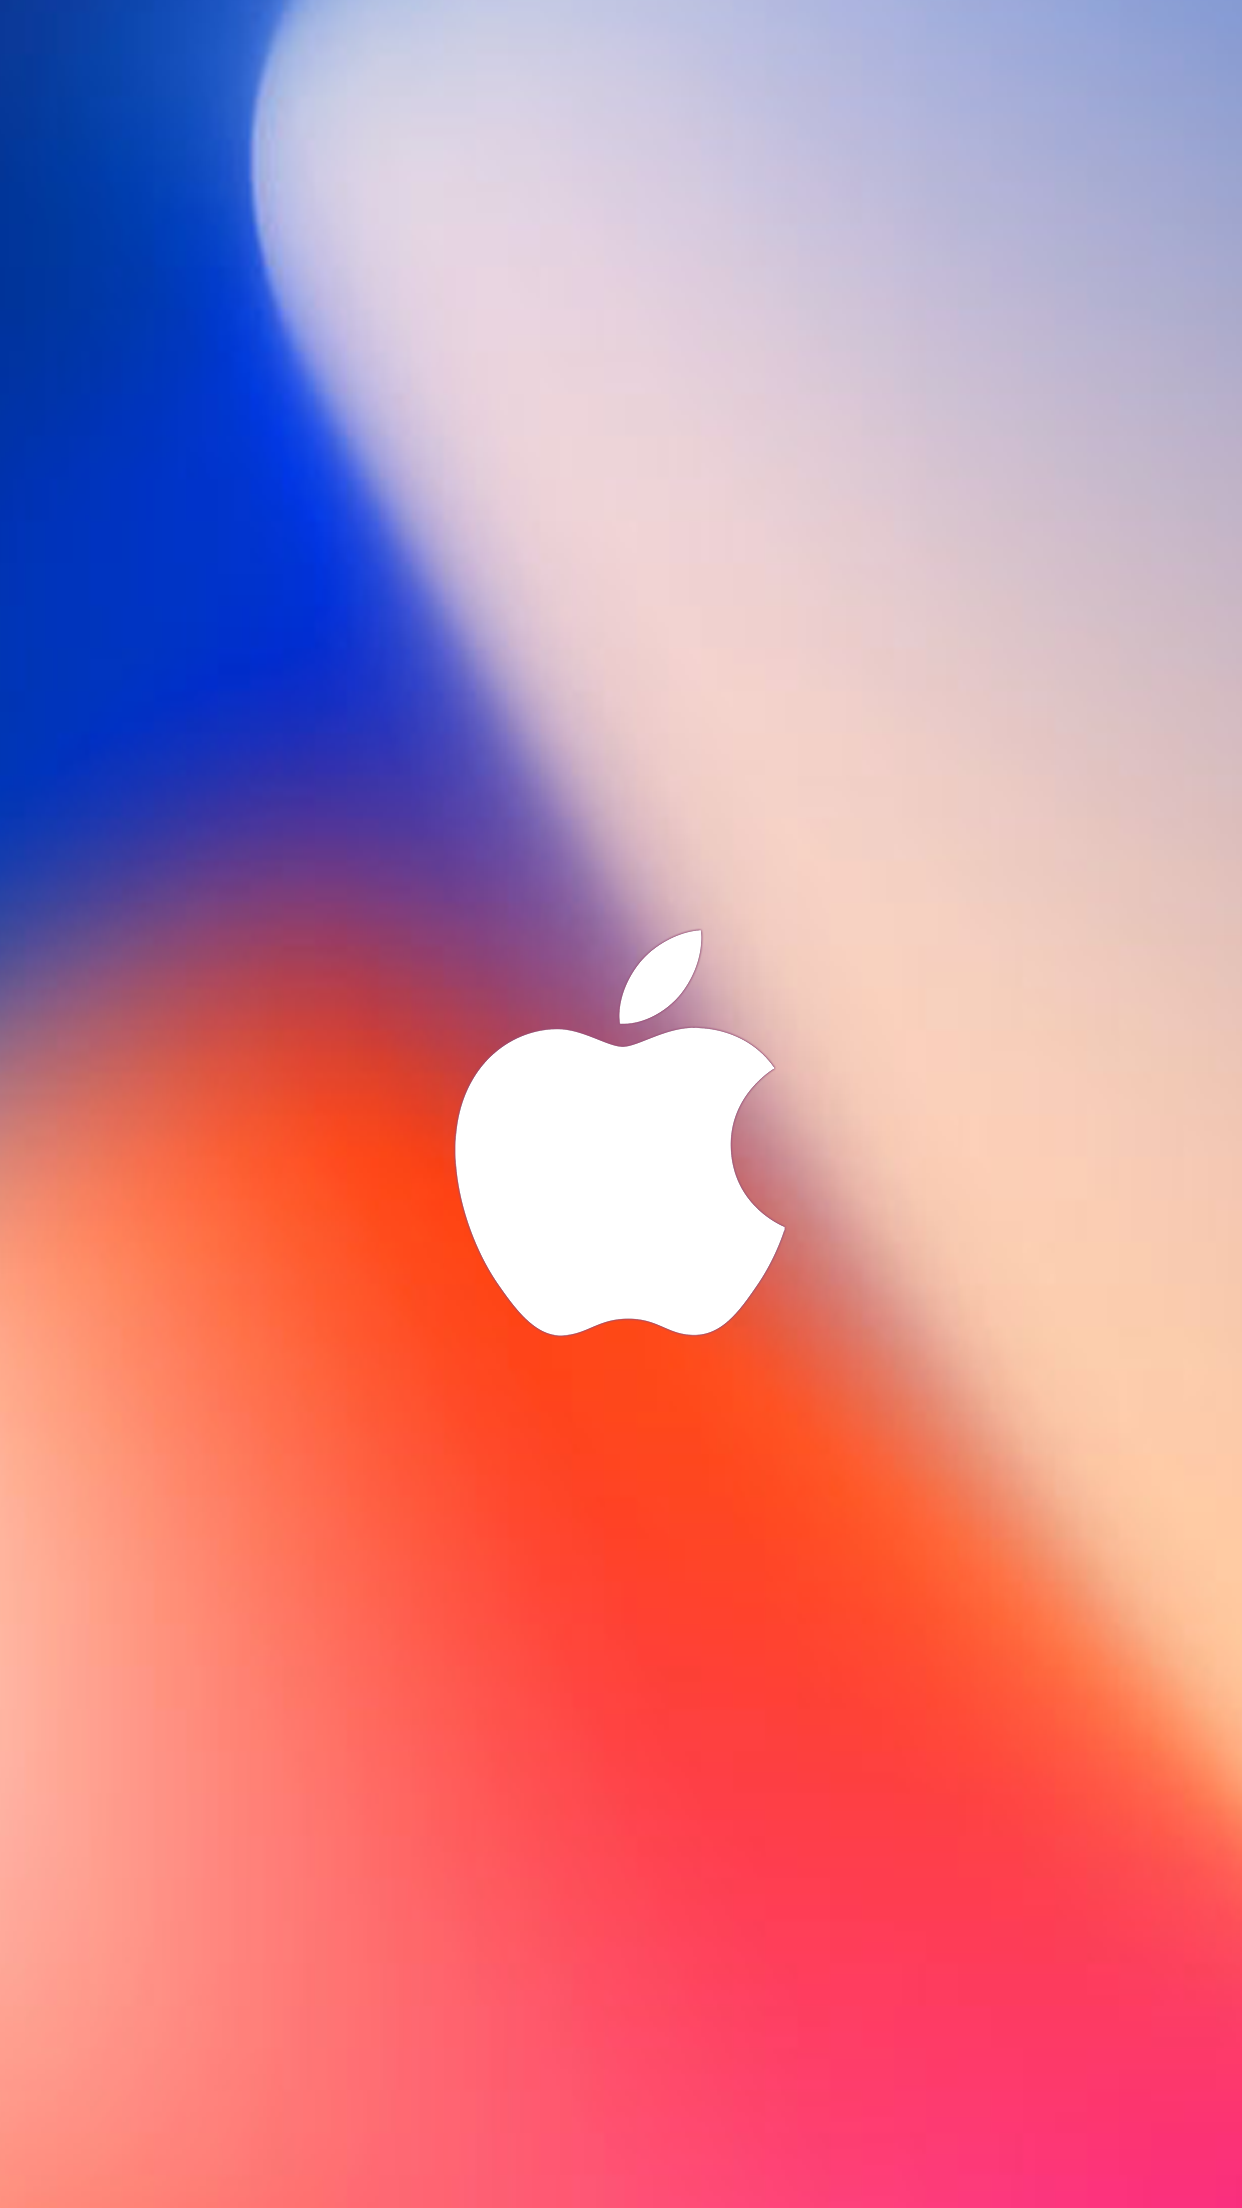 apple iphone wallpapers (1)